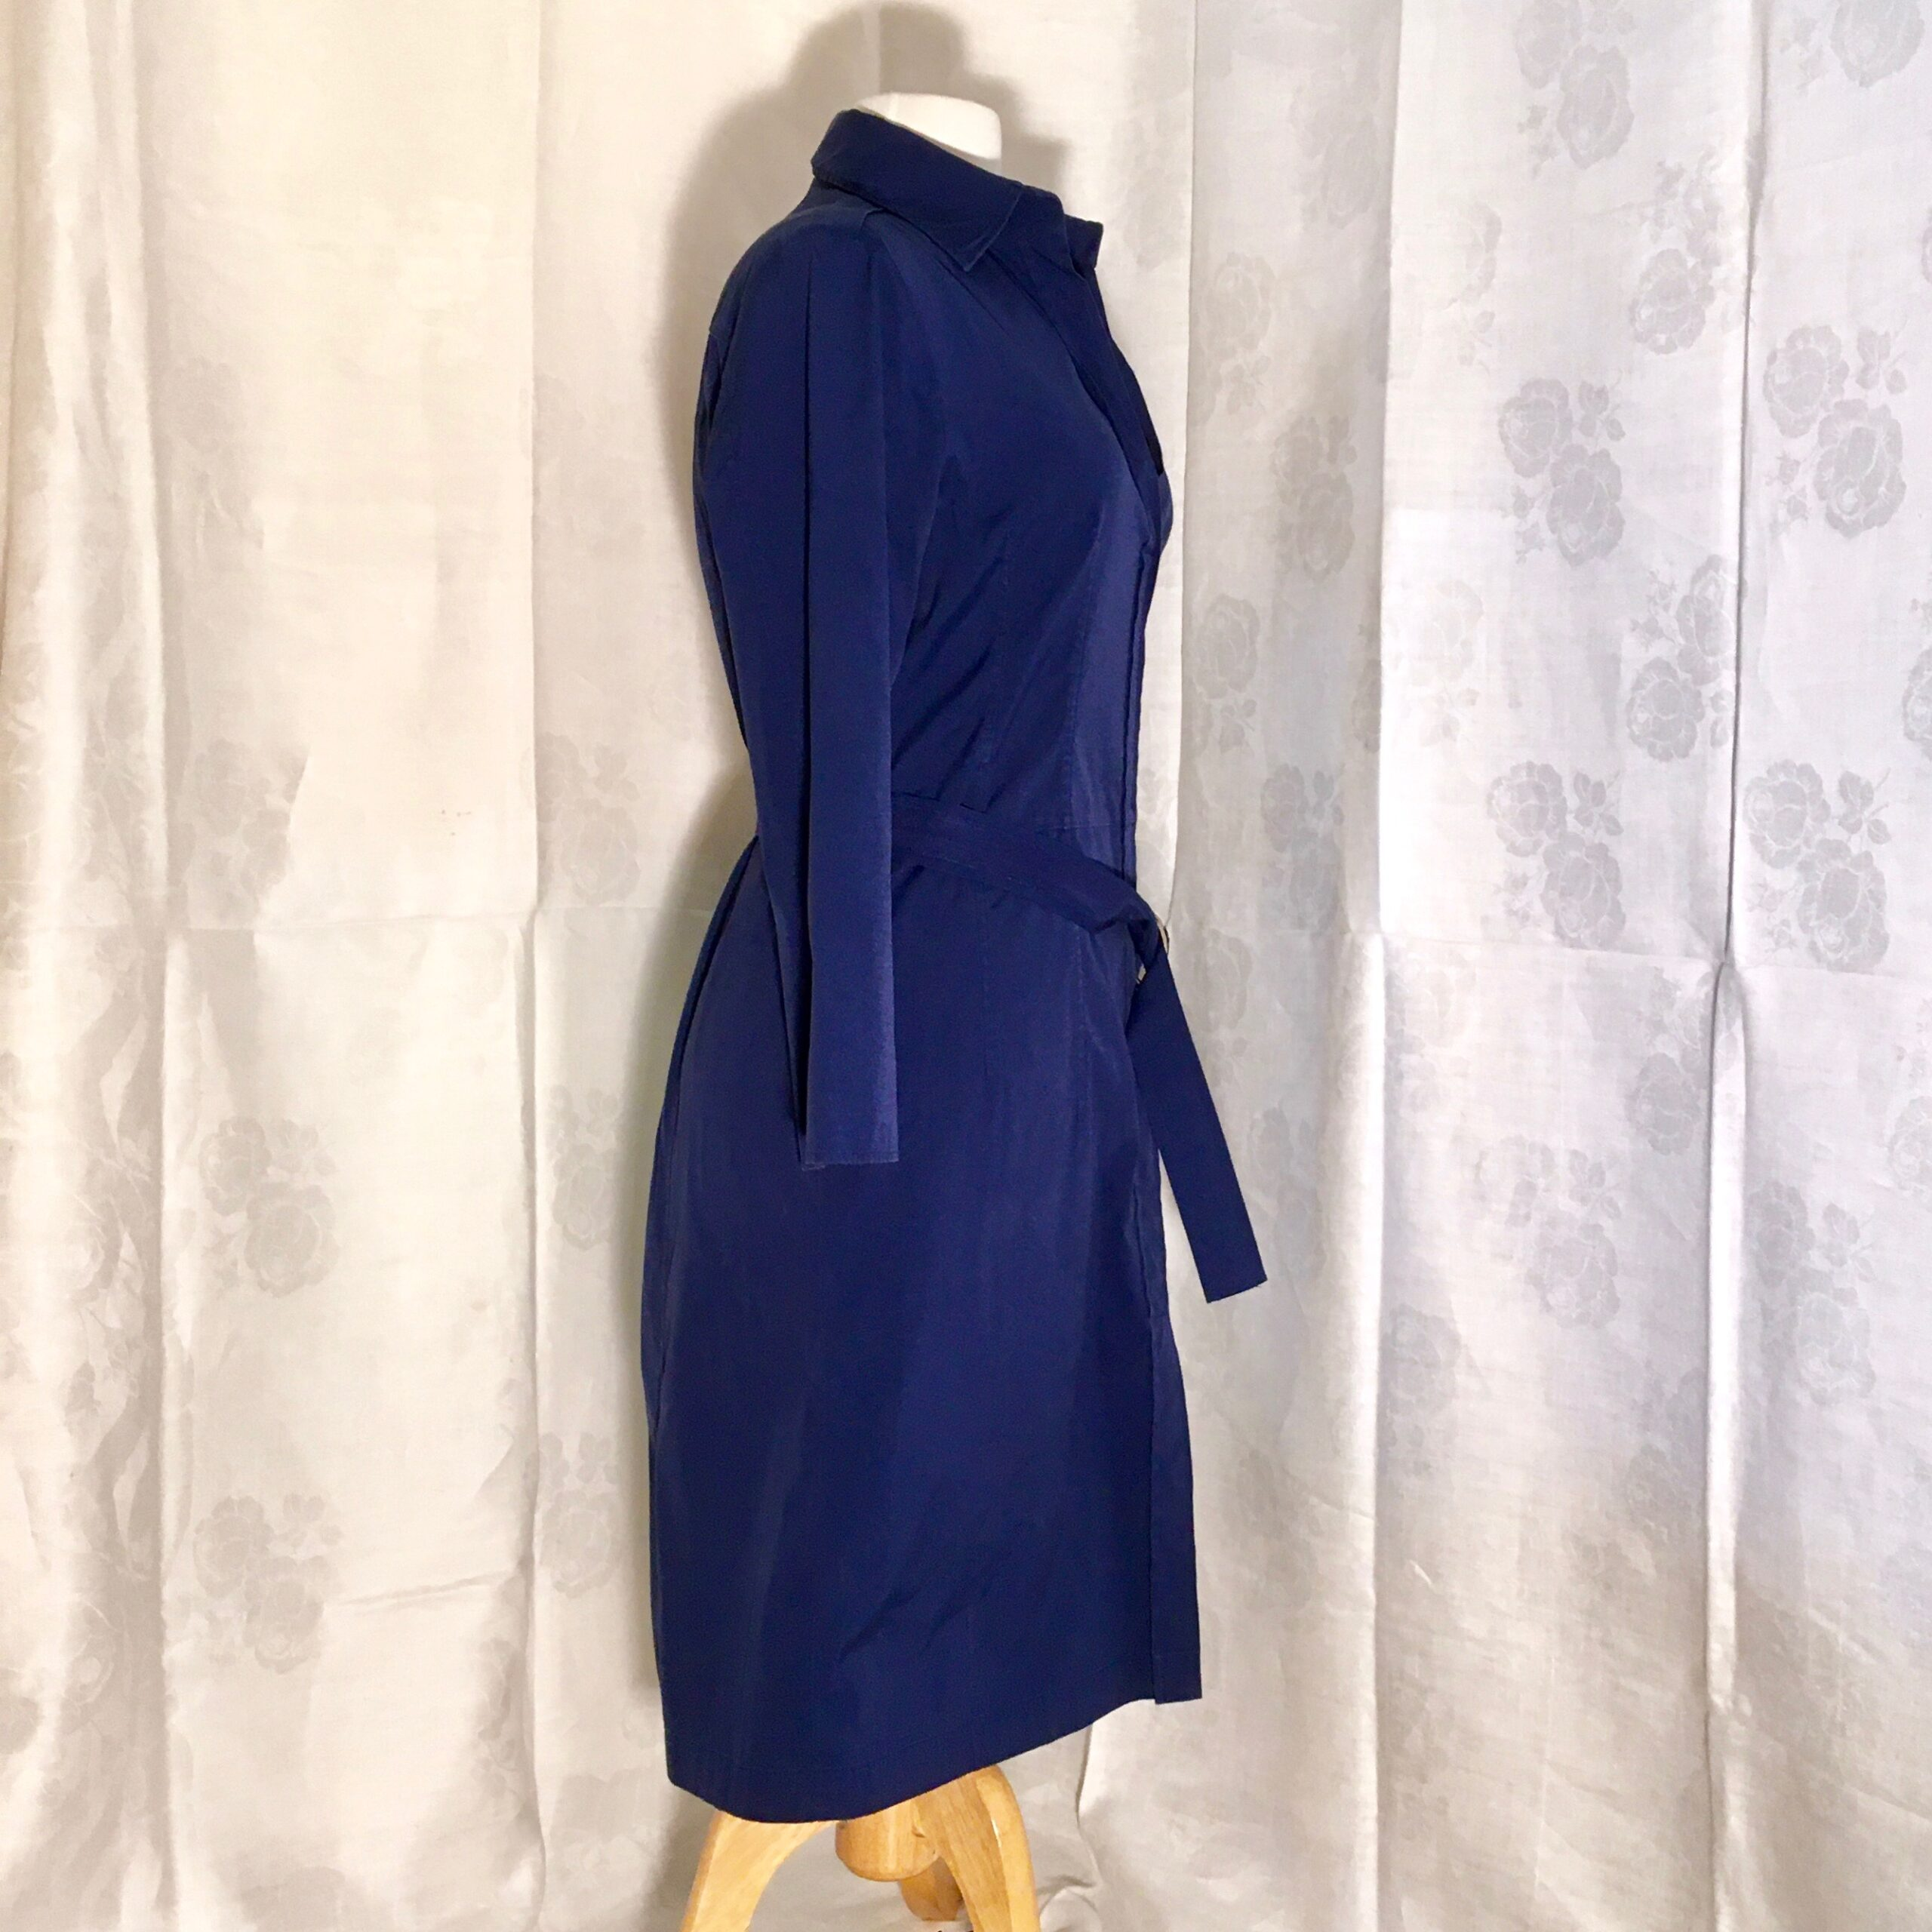 Navy Blue Hugo Boss Dress